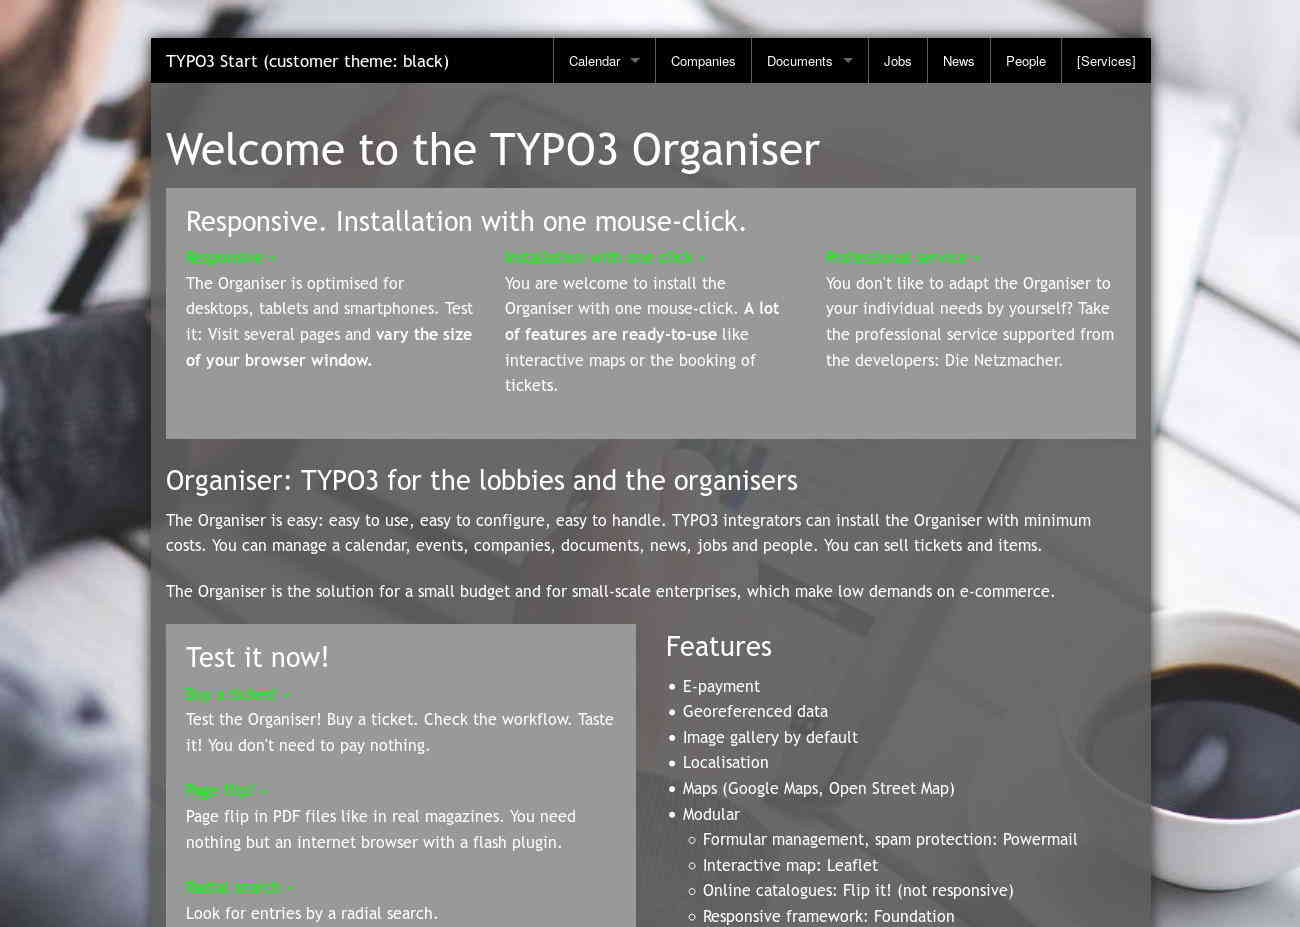 Start TYPO3 Responsive +Customer: theme black